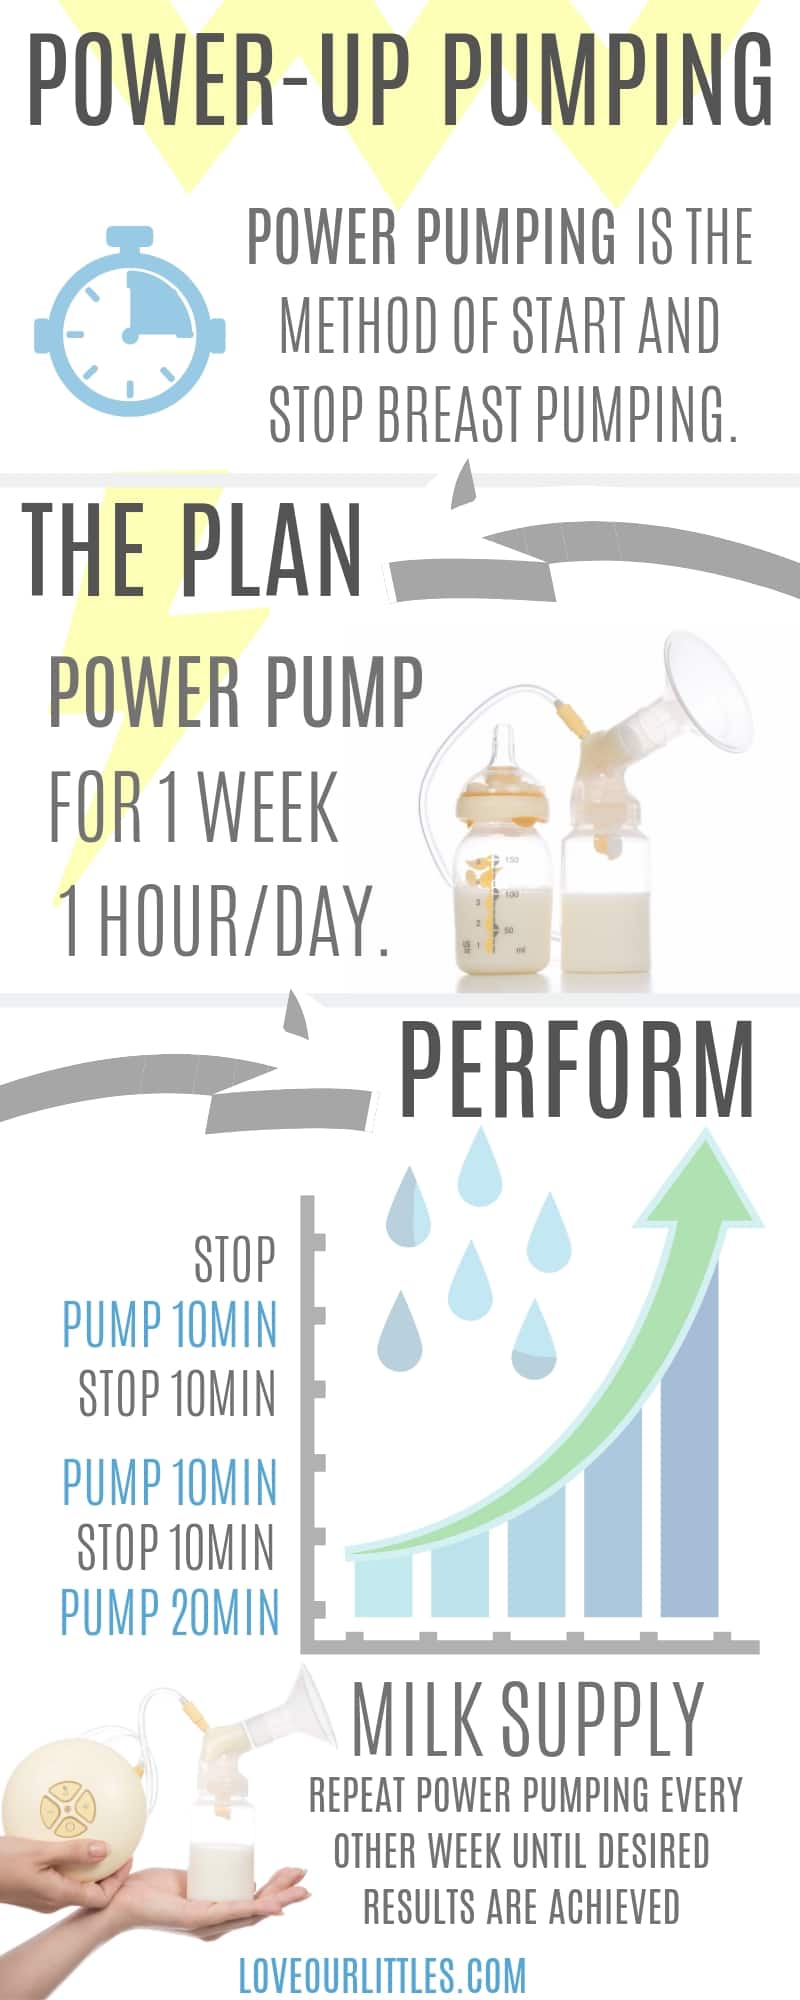 Power-Up breast pumping infographic to demonstrate power pumping and how to fix uneven milk supply in one breast.